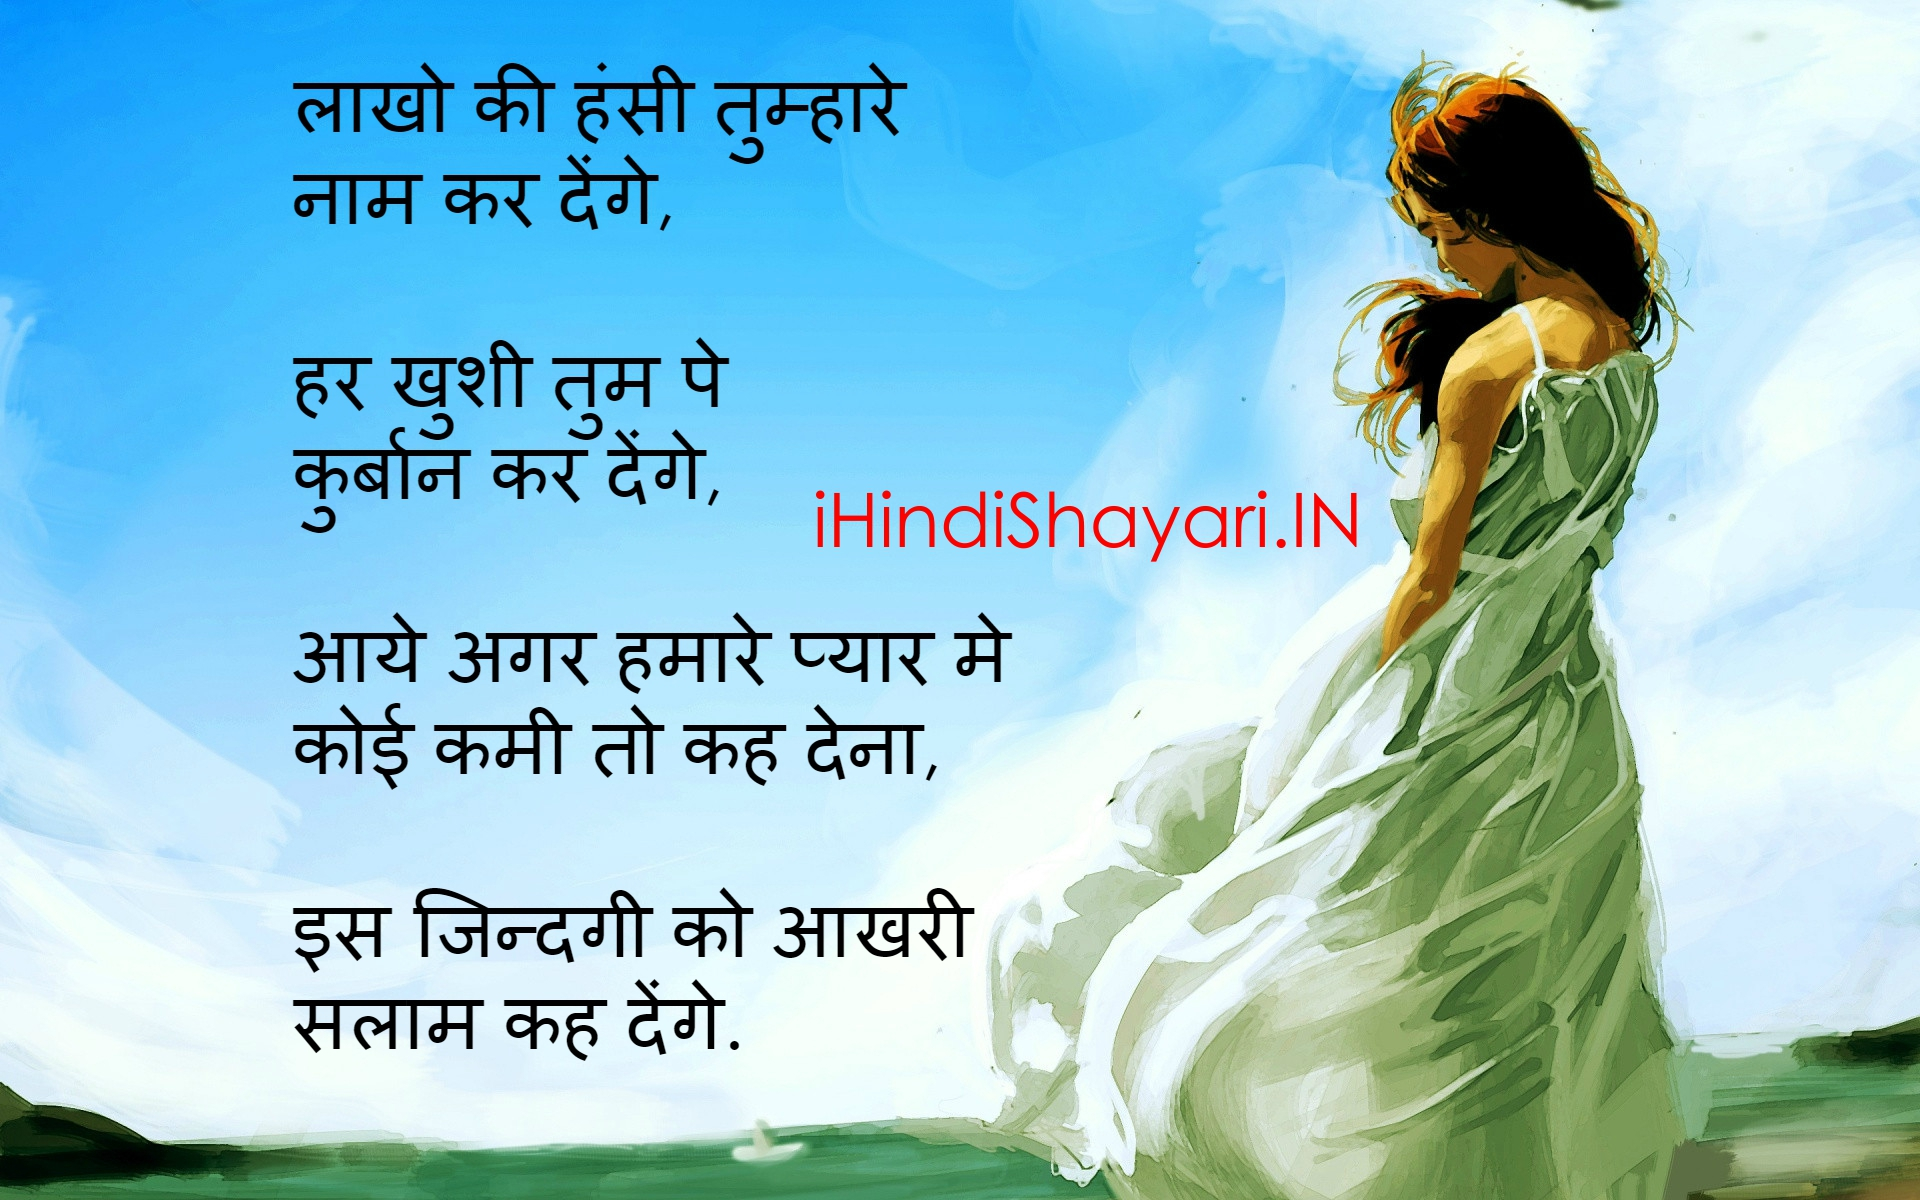 Wallpaper download love shayri - Sad Shayari Images Download